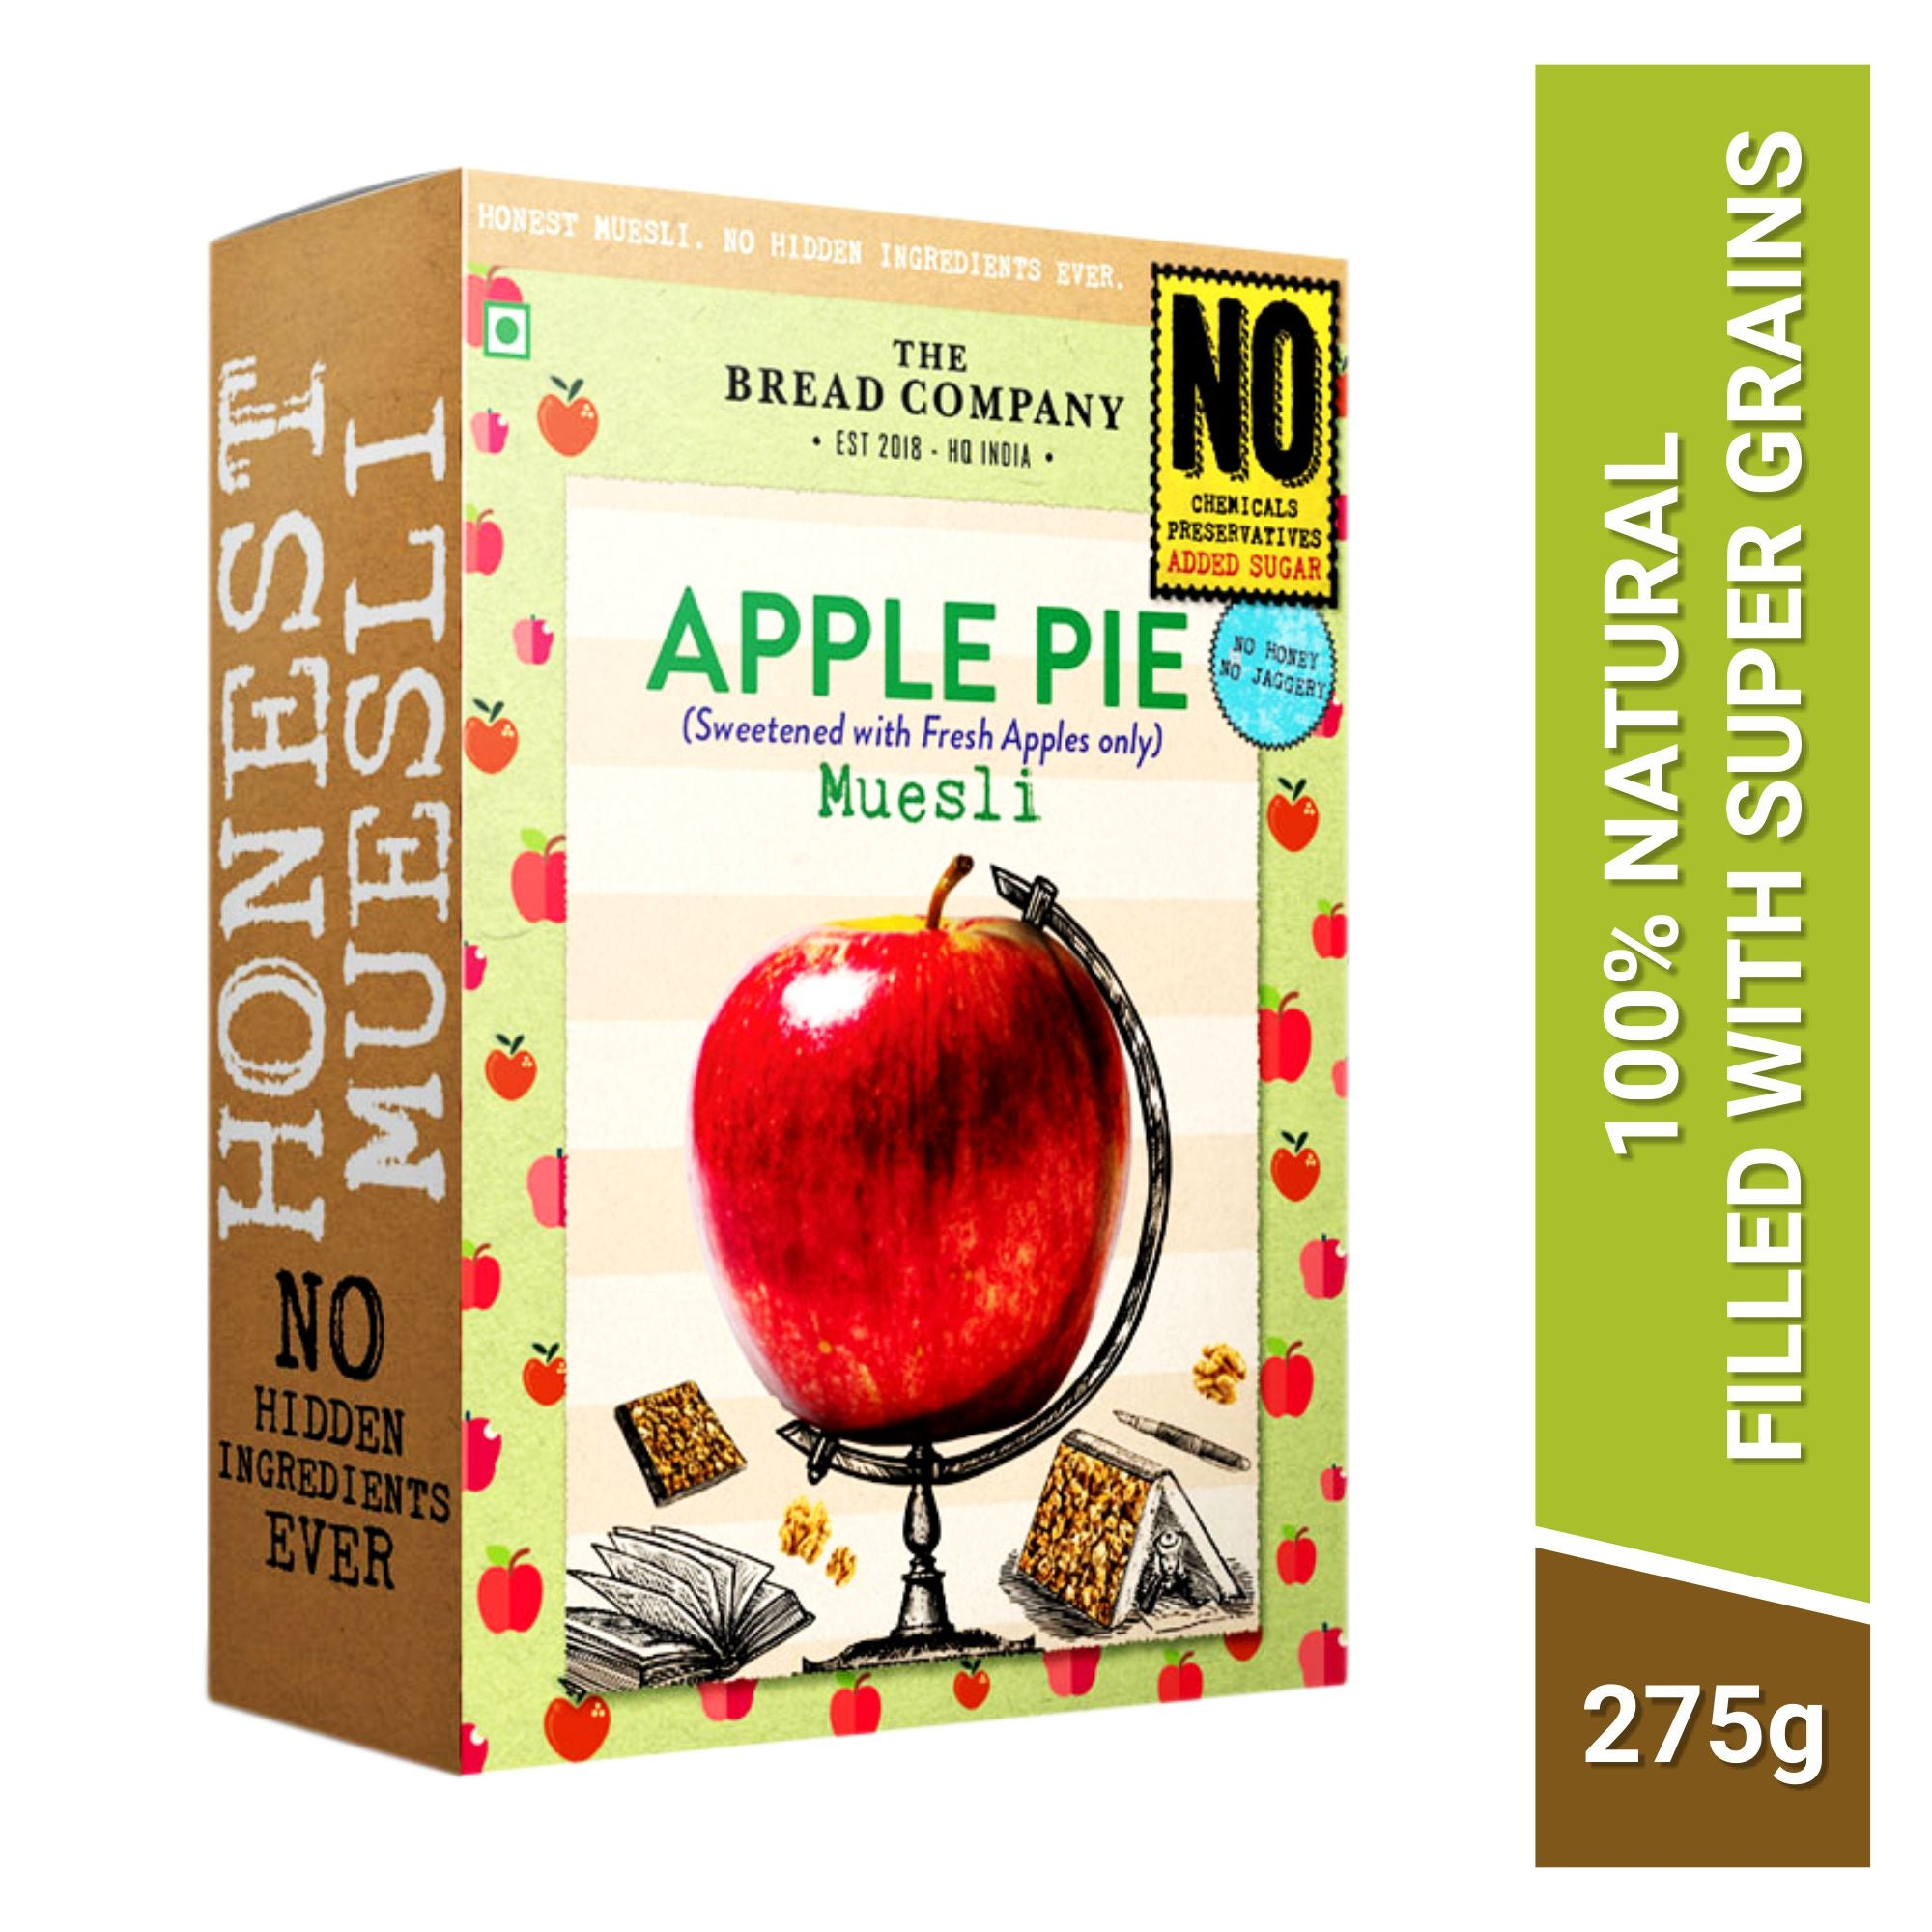 Sugarfree Apple pie muesli (Sweetened with Apples only) - 275 gms